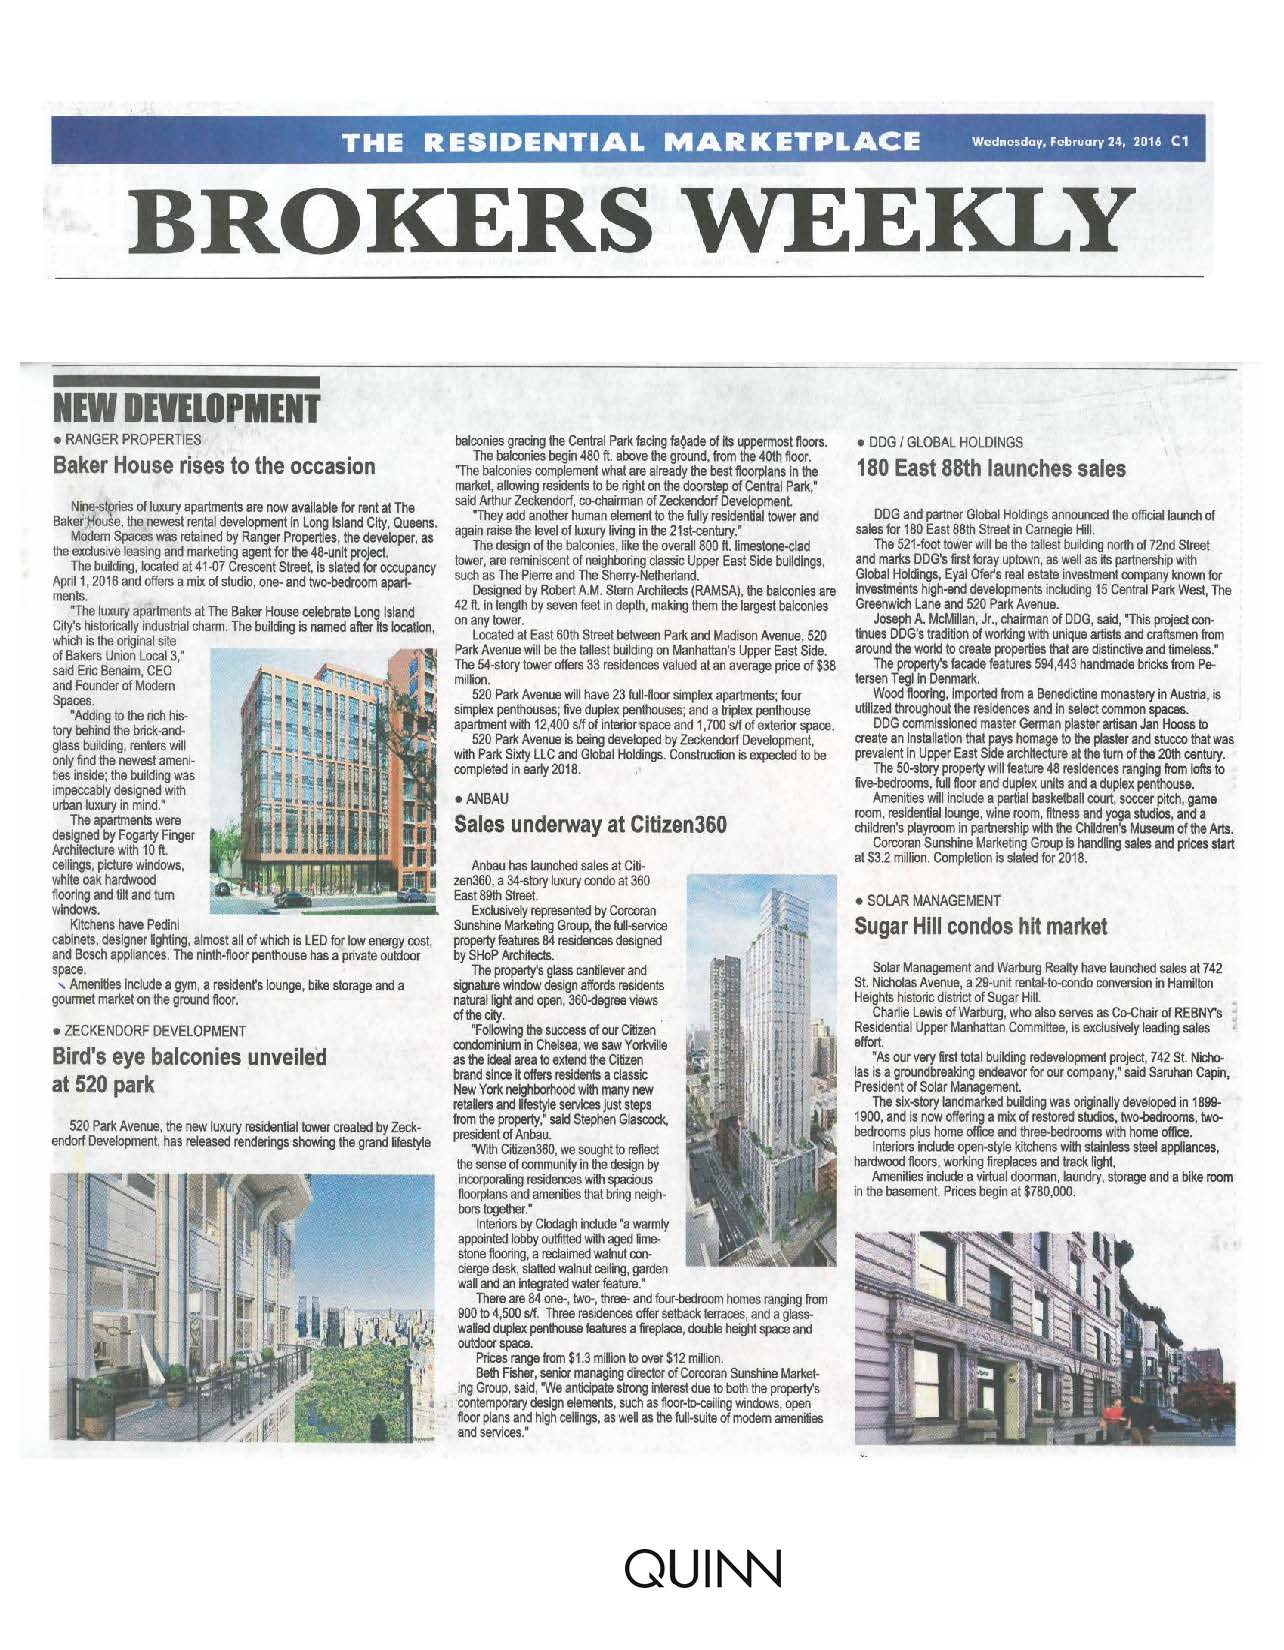 Real Estate Weekly - Baker House rises to the occasion - 02.24.16 (2) (2)